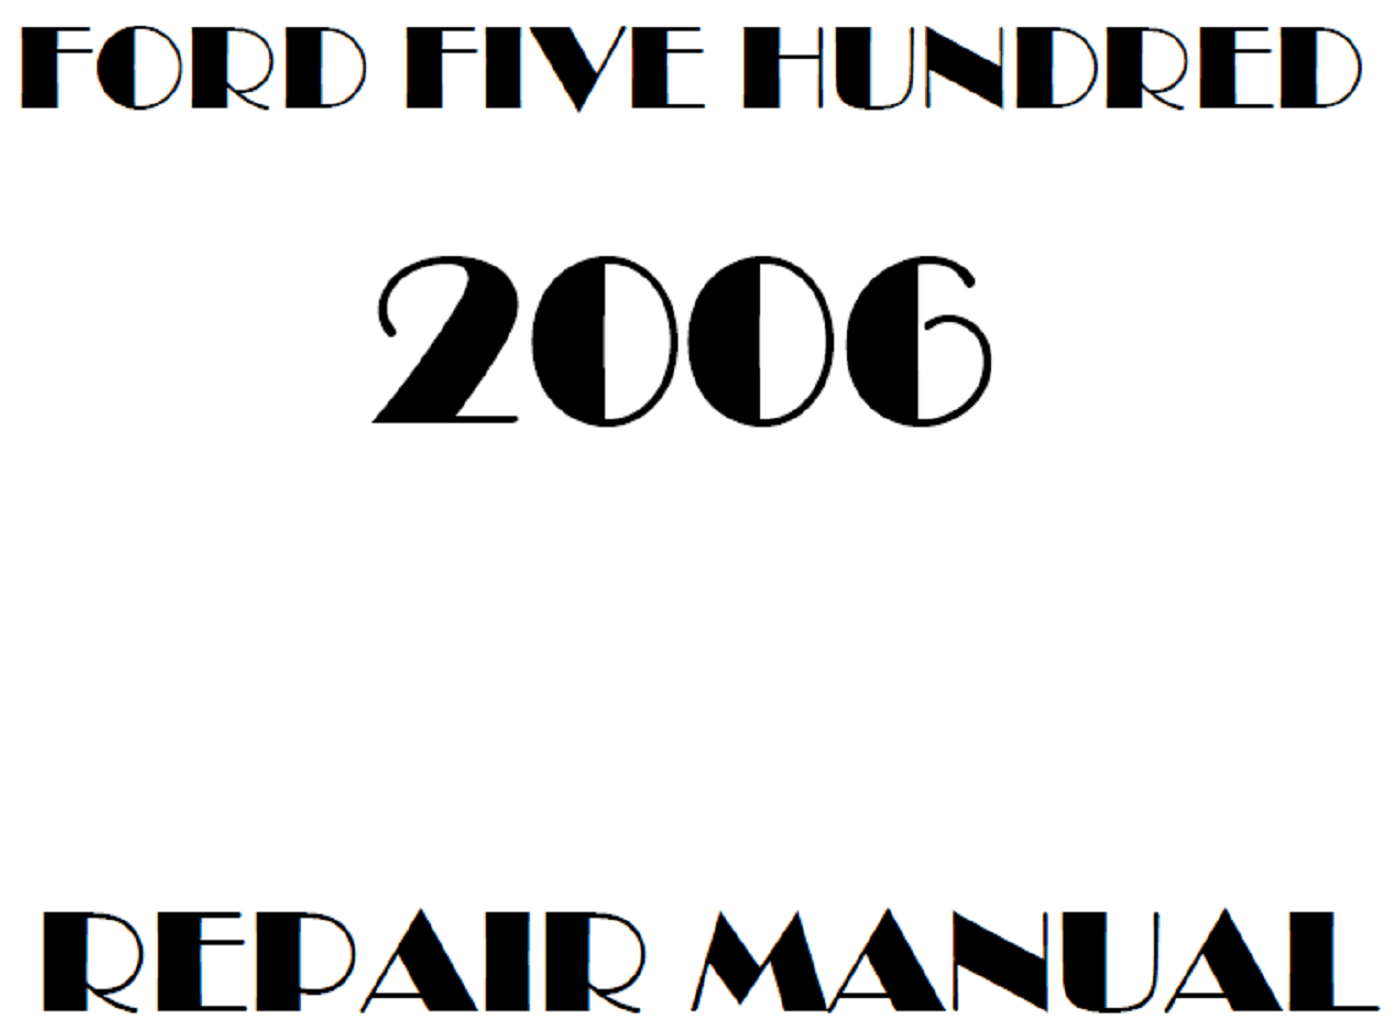 2006 Ford Five Hundred repair manual